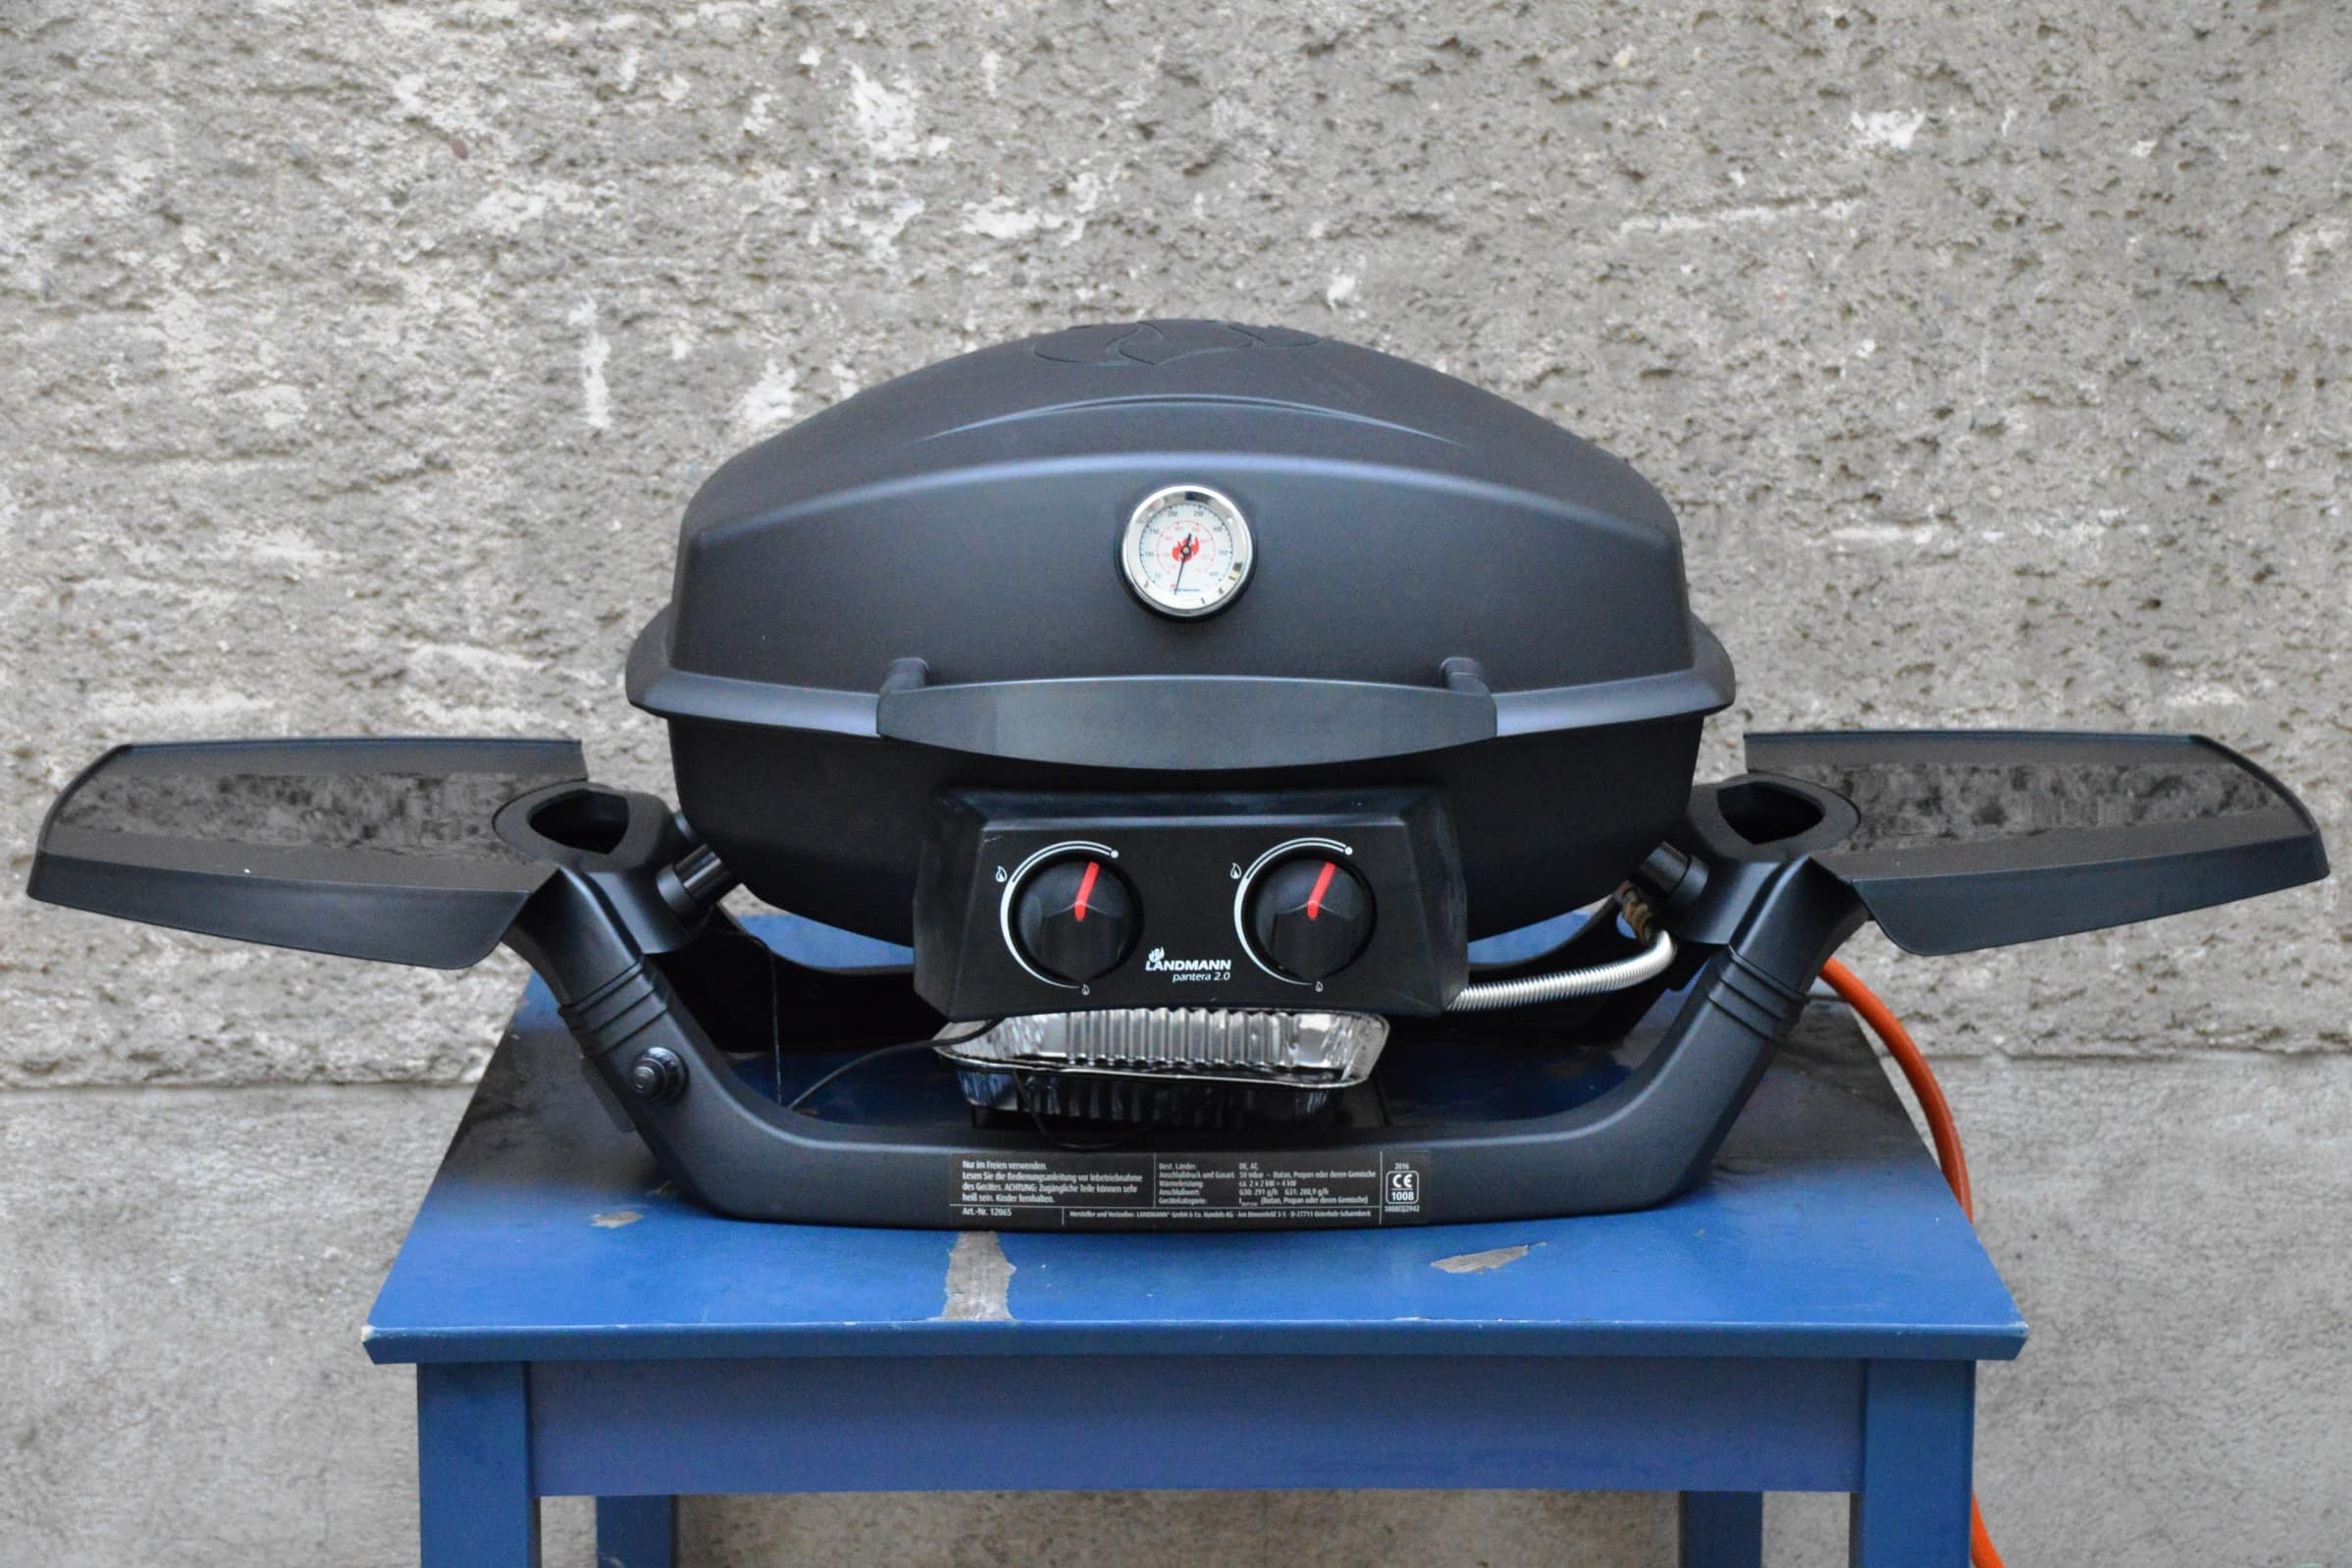 Landmann Gasgrill Test : Angegrillt: landmann pantera 2.0 im test bacon zum steak